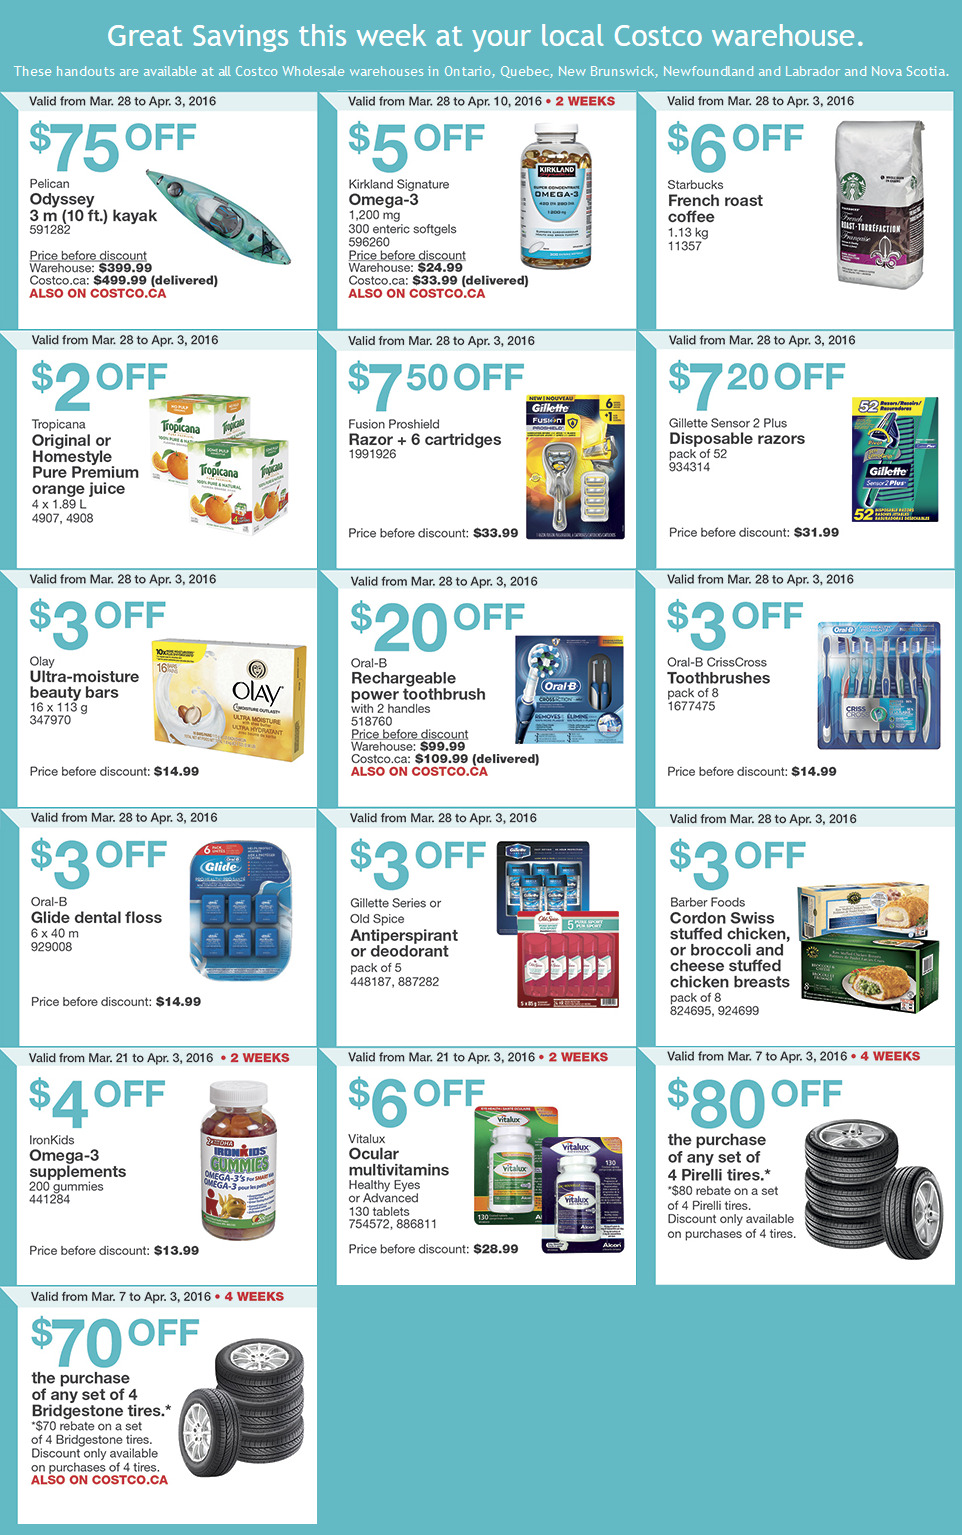 Costco Warehouse Coupons March 28th April 3rd Deals